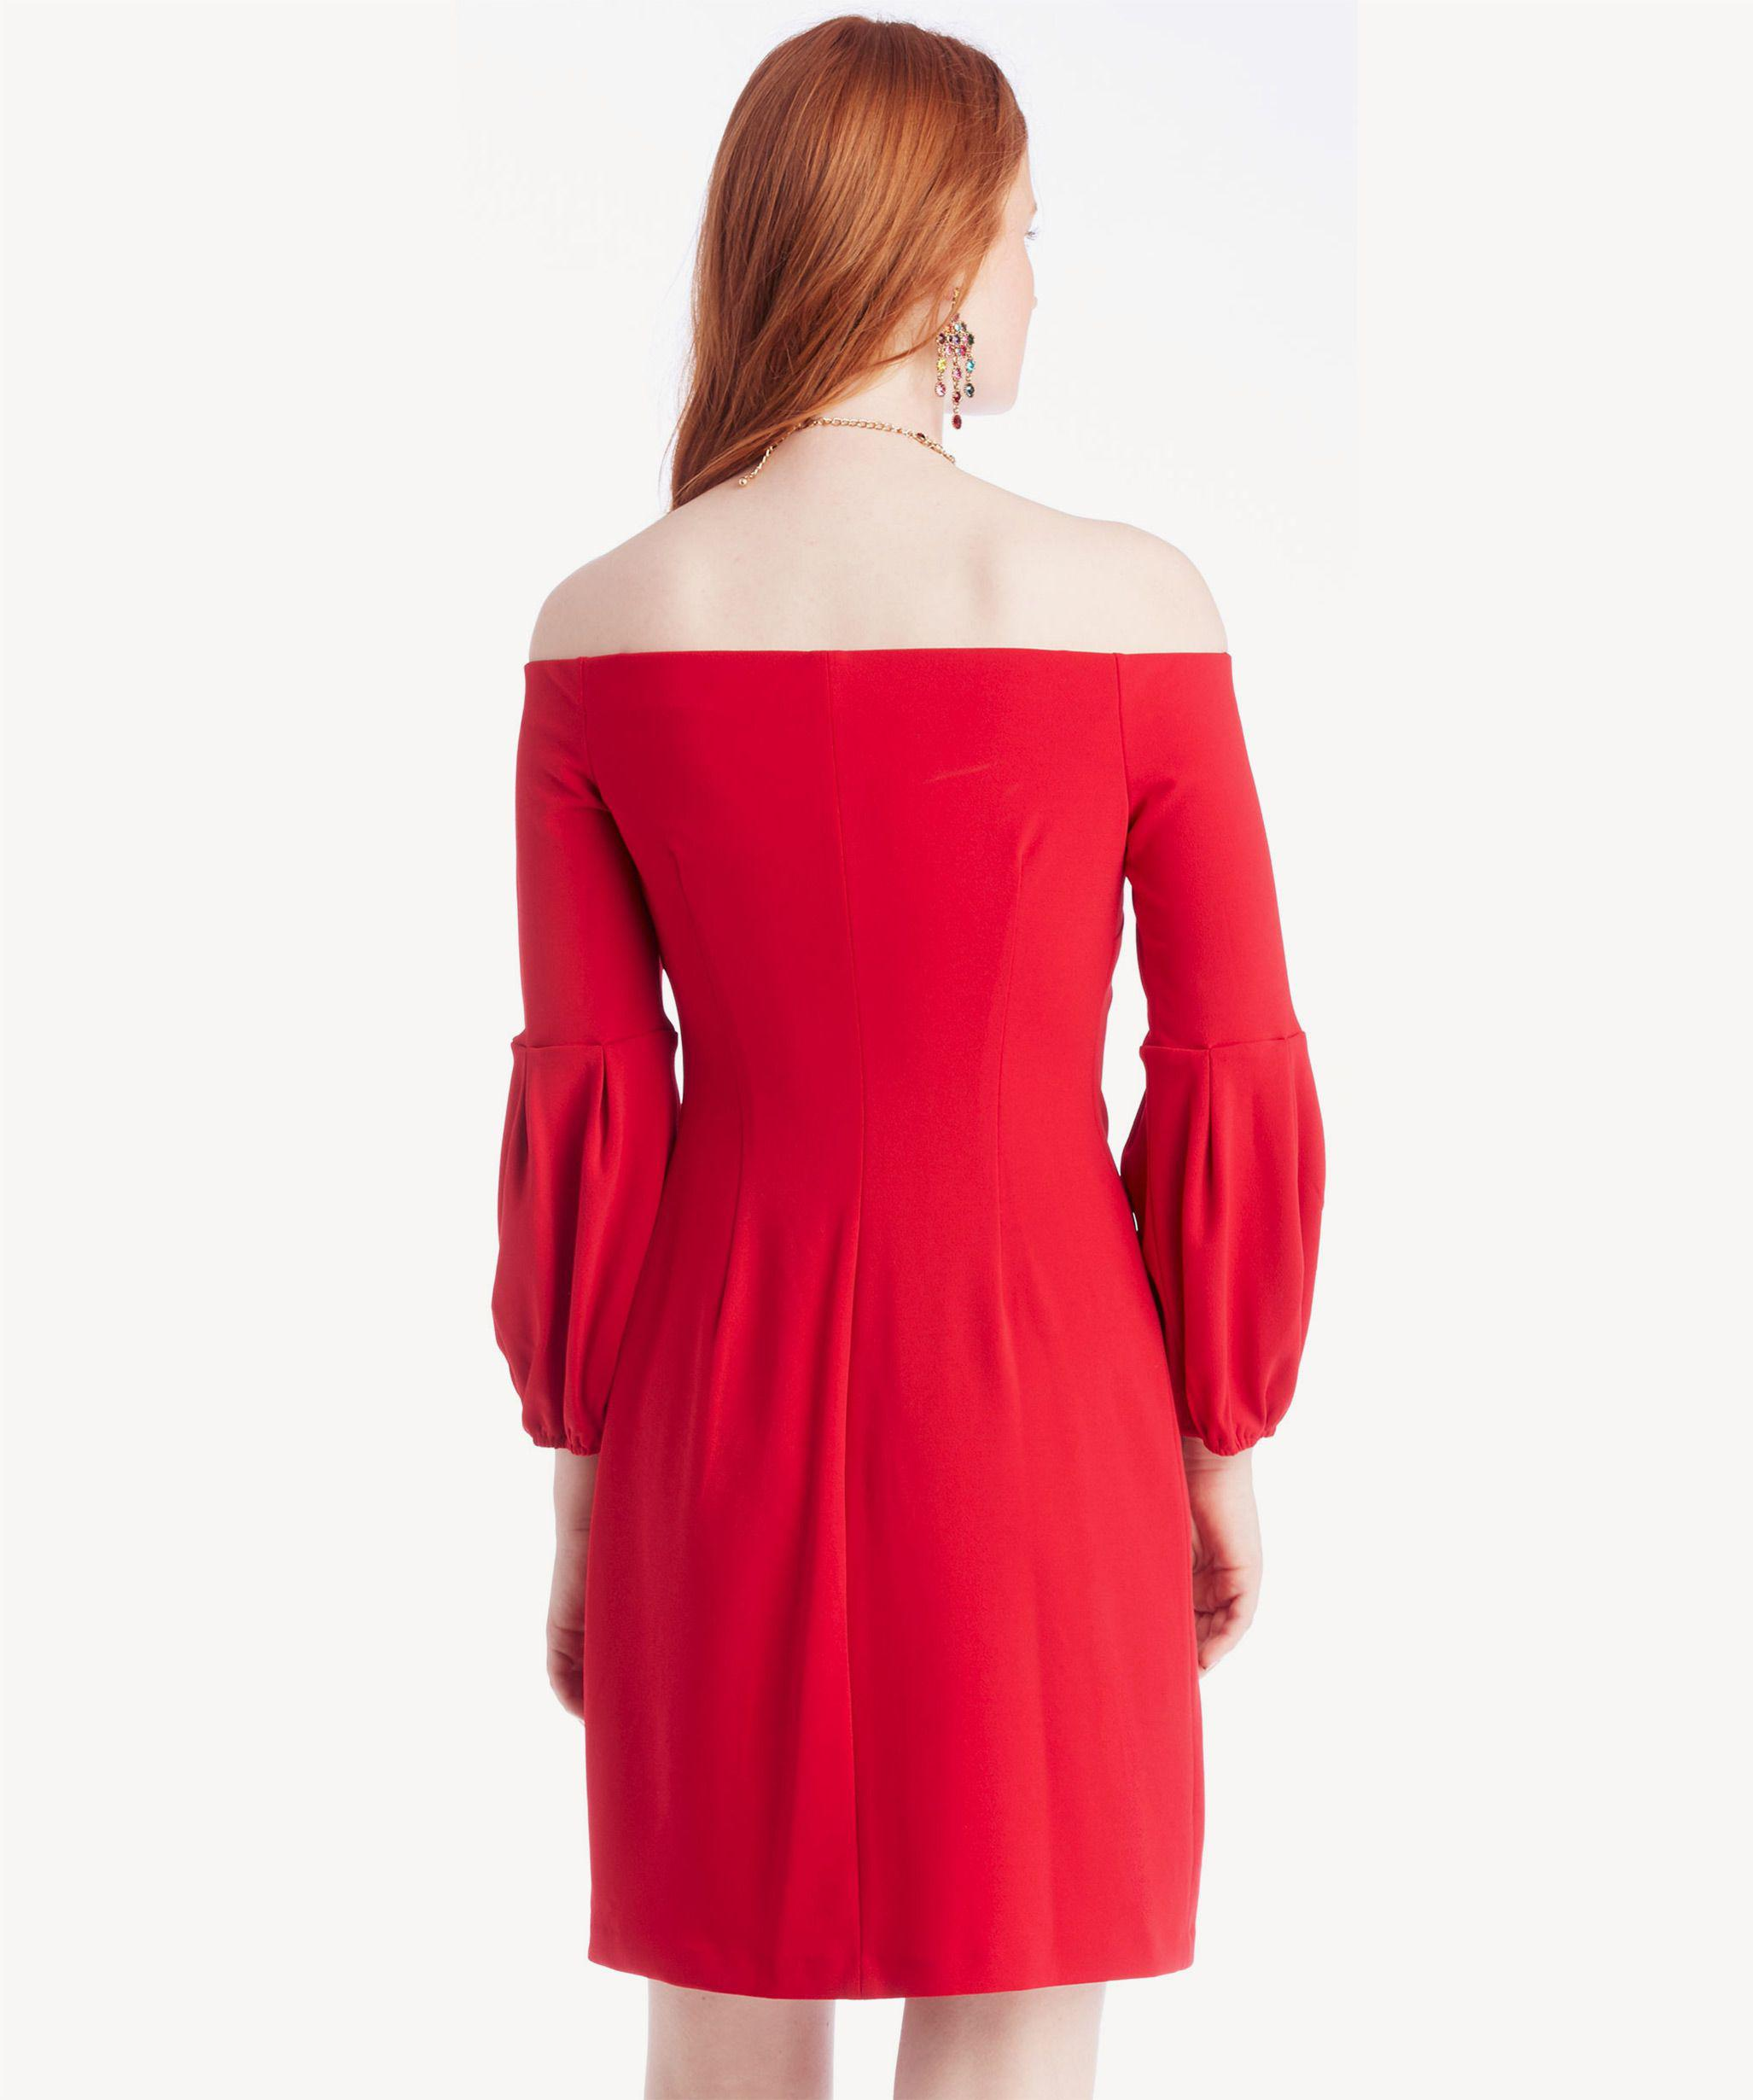 05fa1cd8d5 Lyst - Vince Camuto Off-shoulder Bubble Sleeve Crepe Ponte Dress in Red